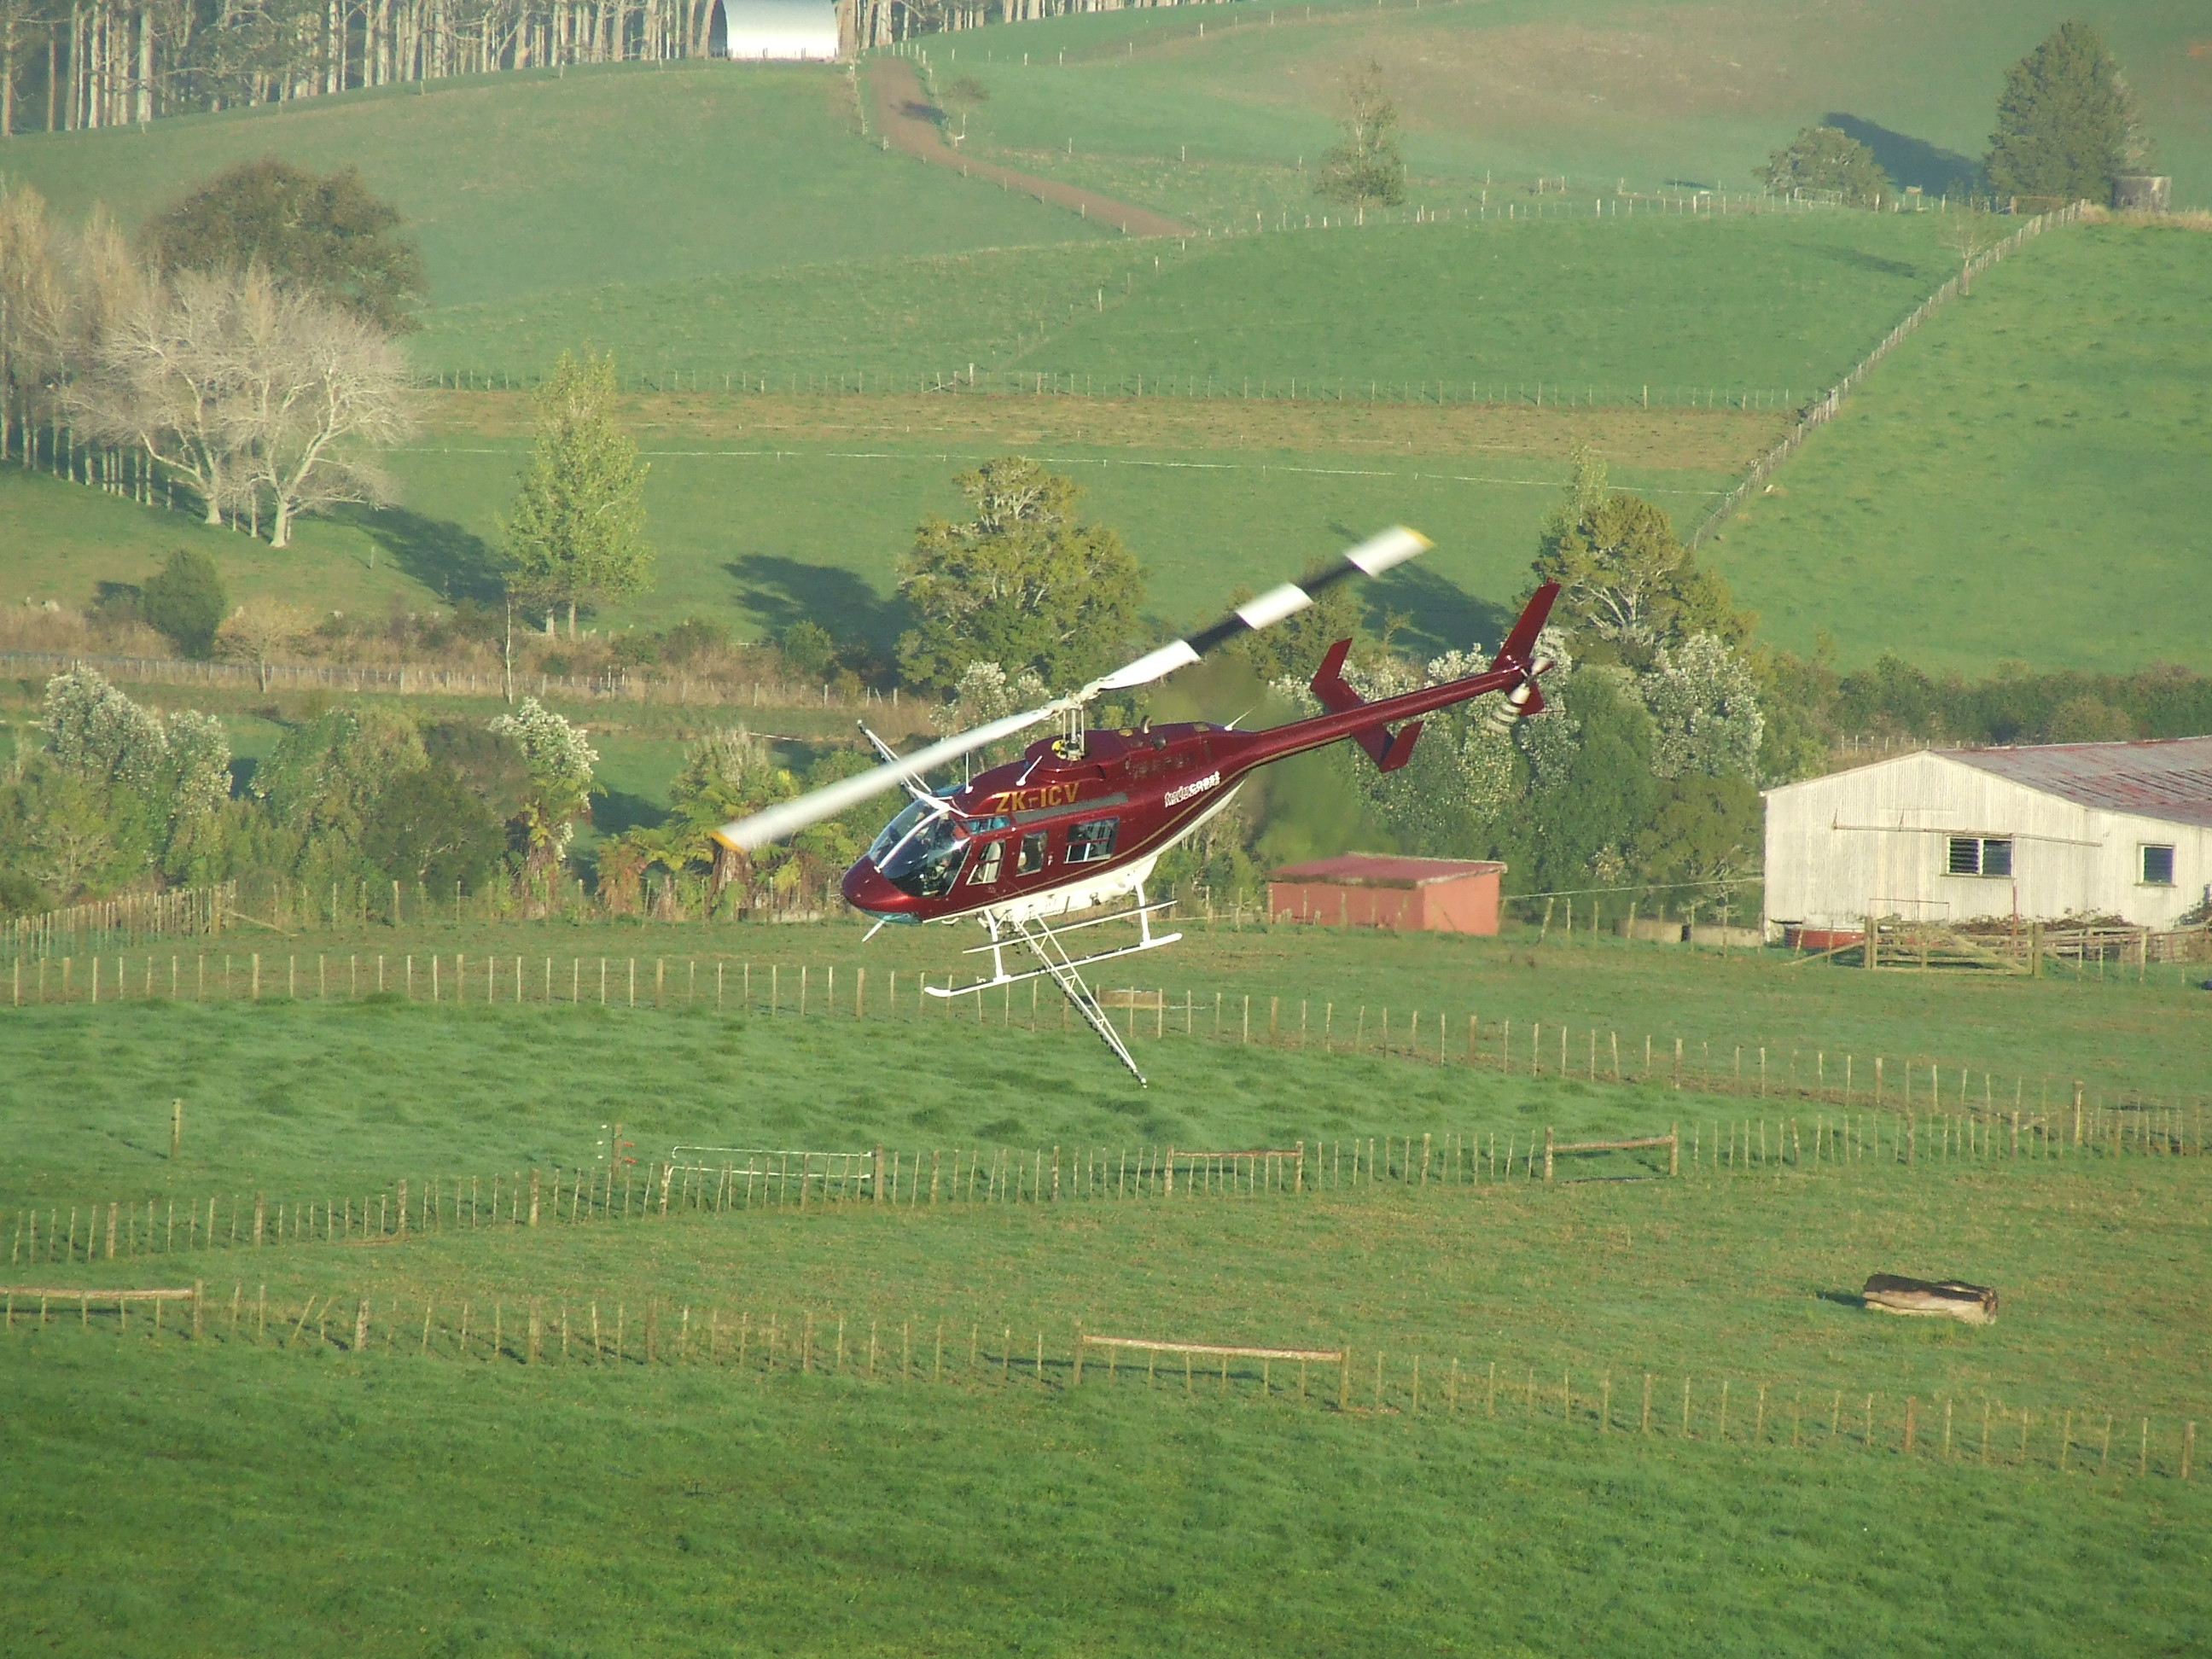 Twincoast Helicopters 2007 Ltd